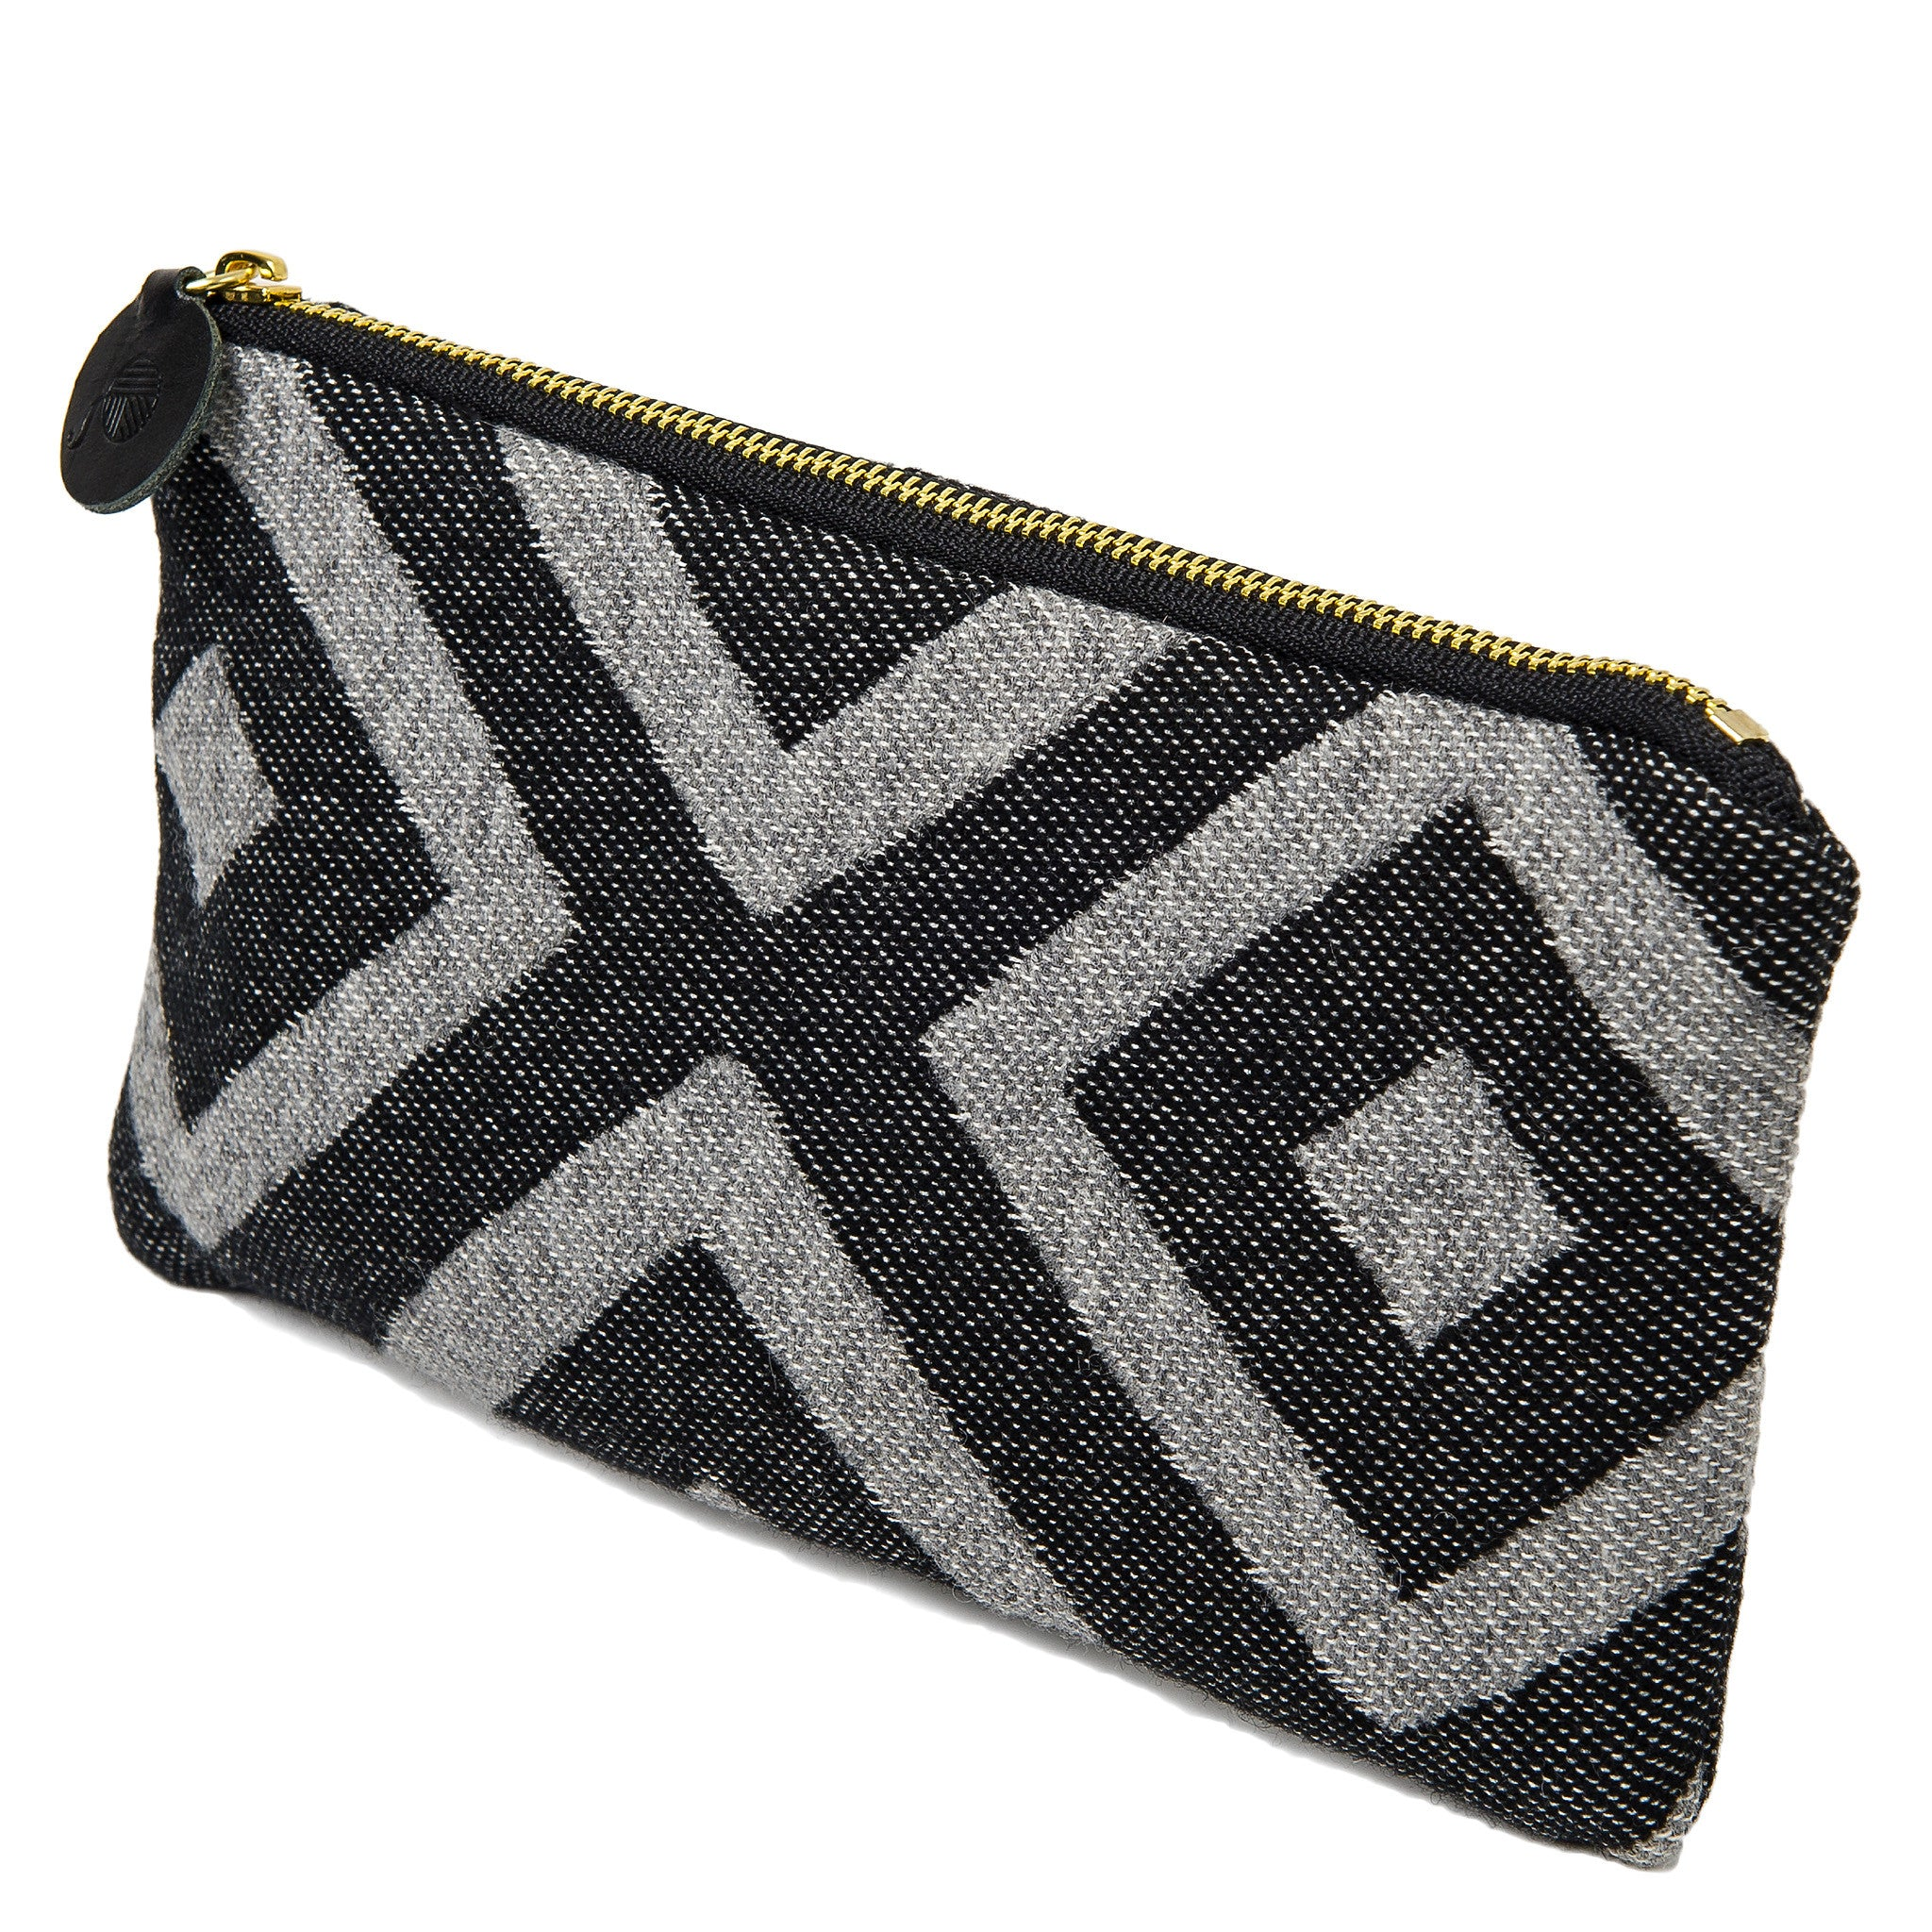 Merino Lambswool Zip Purse - Broadway Charcoal on Black - Tori Murphy